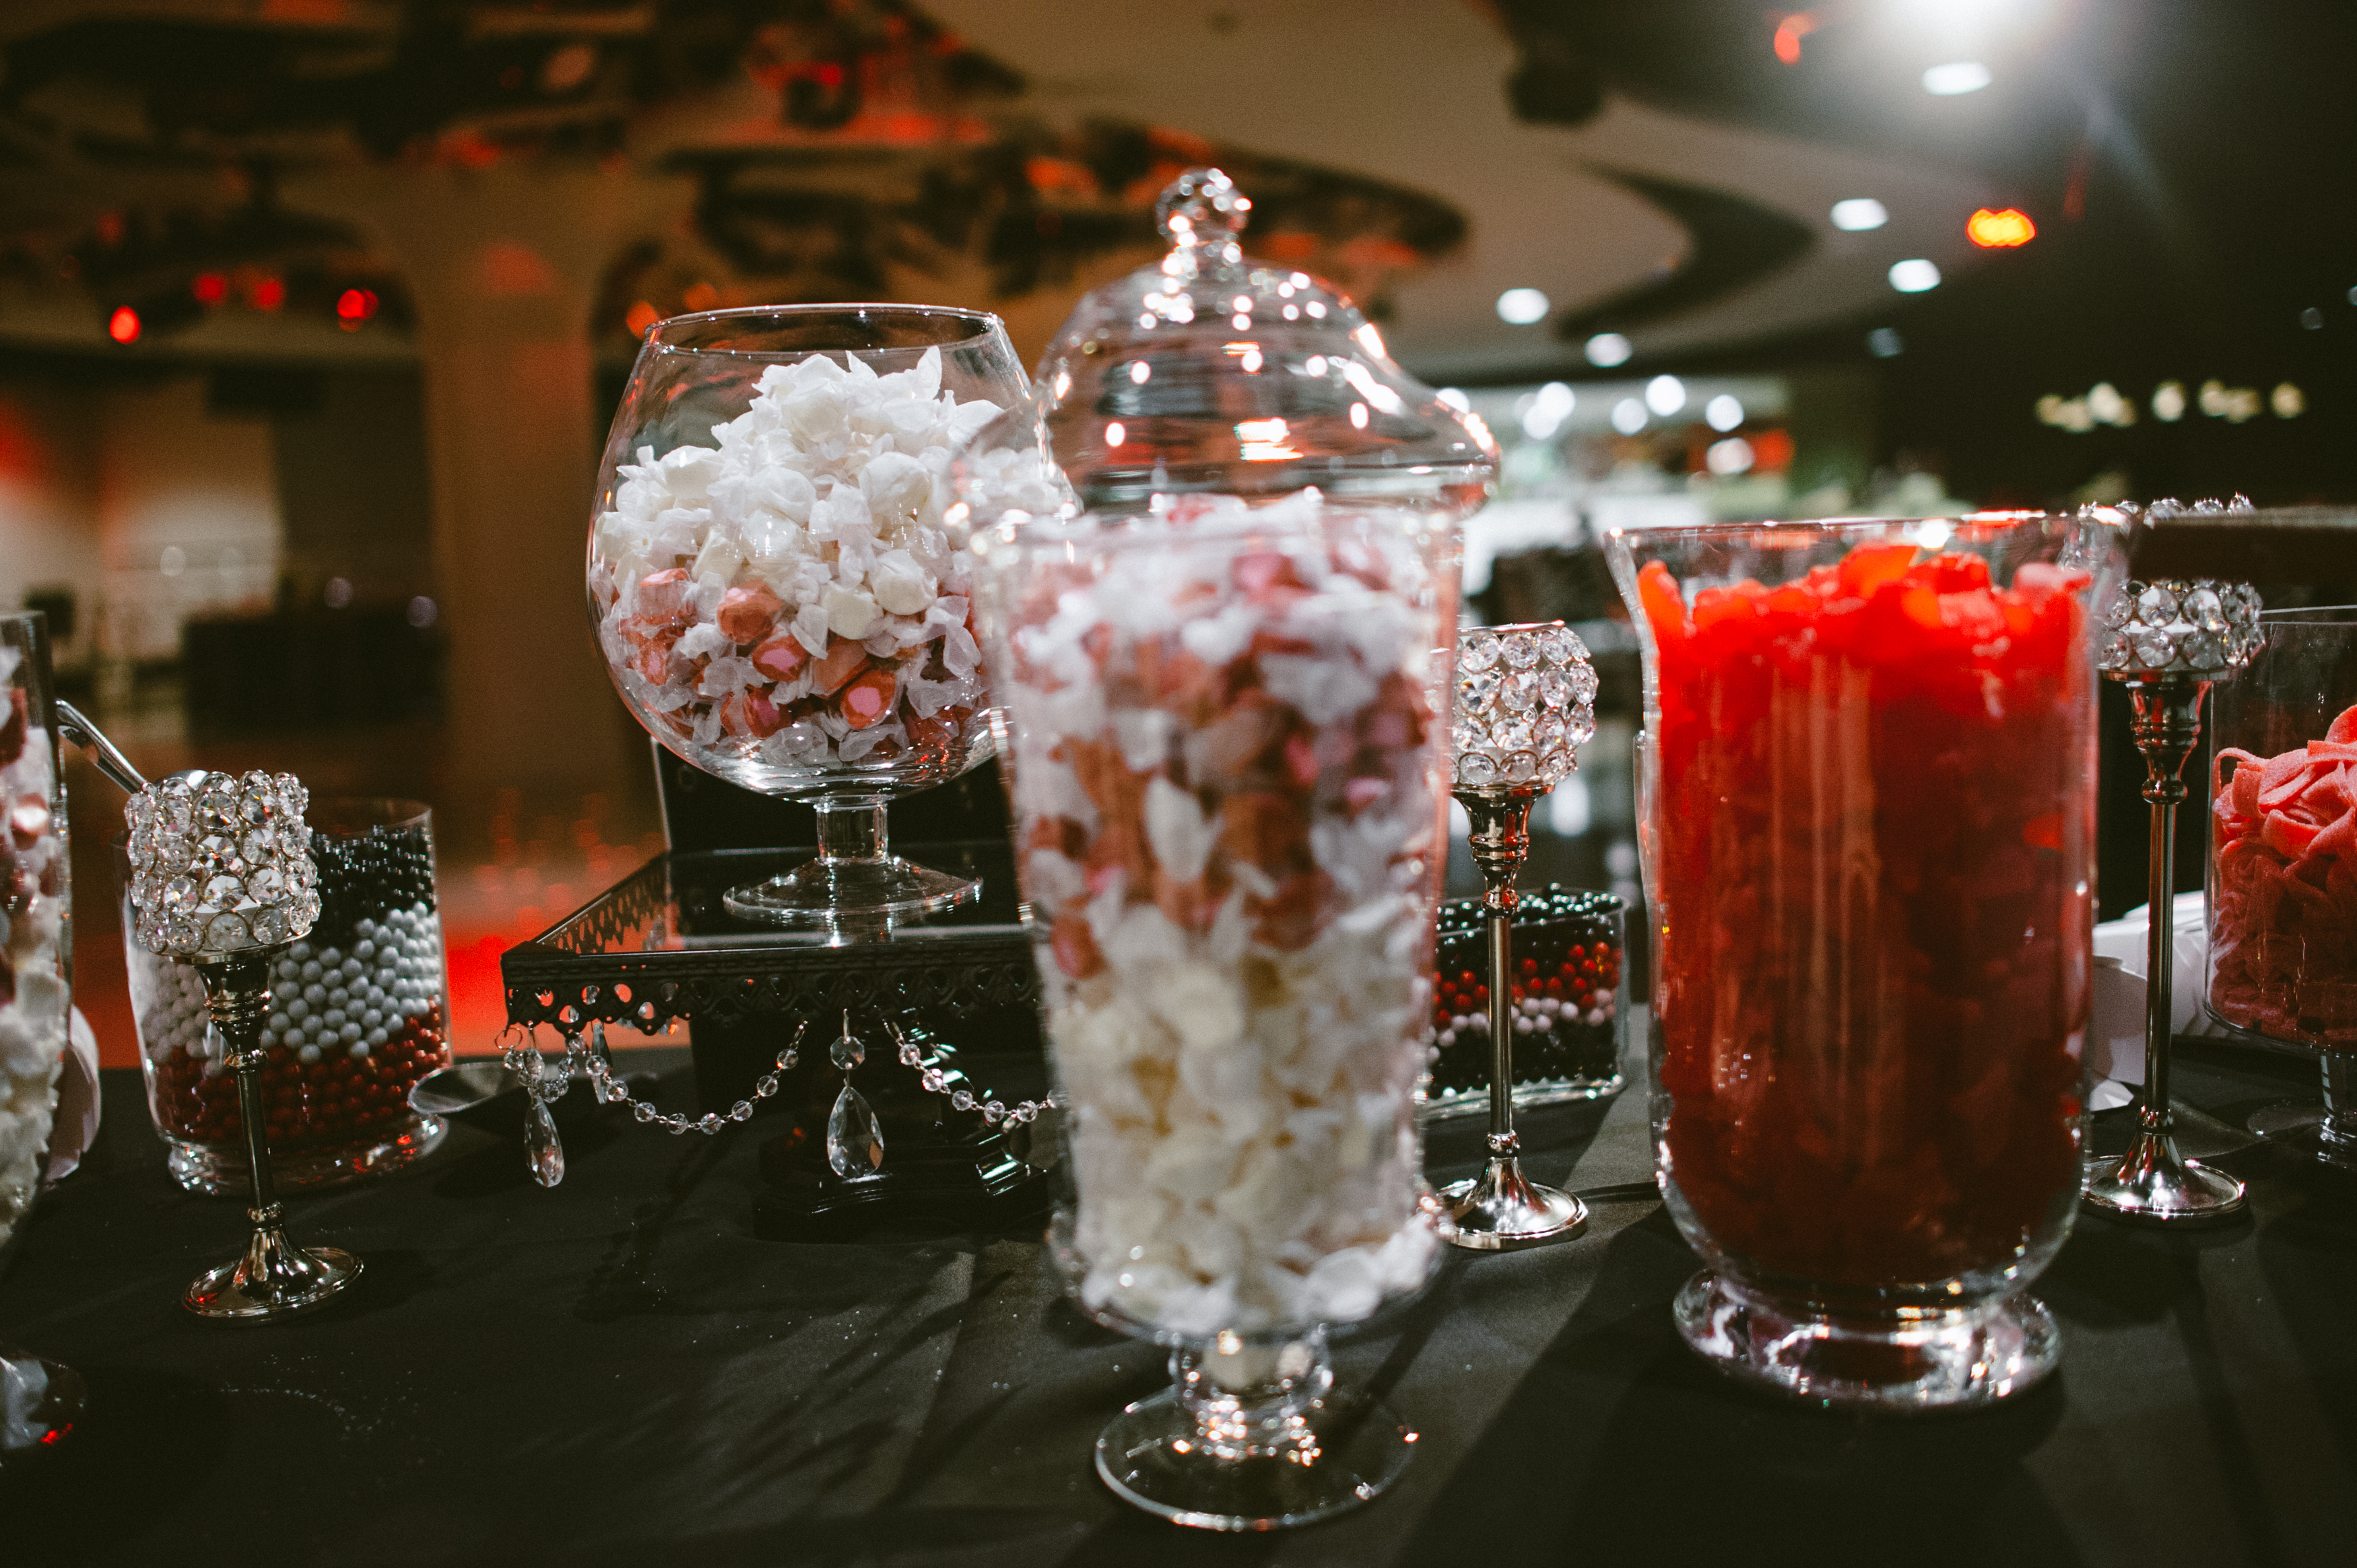 Wonderful Candy Bar Wedding Favors Live What You Love Candybar Cenypradufo Image  Collections